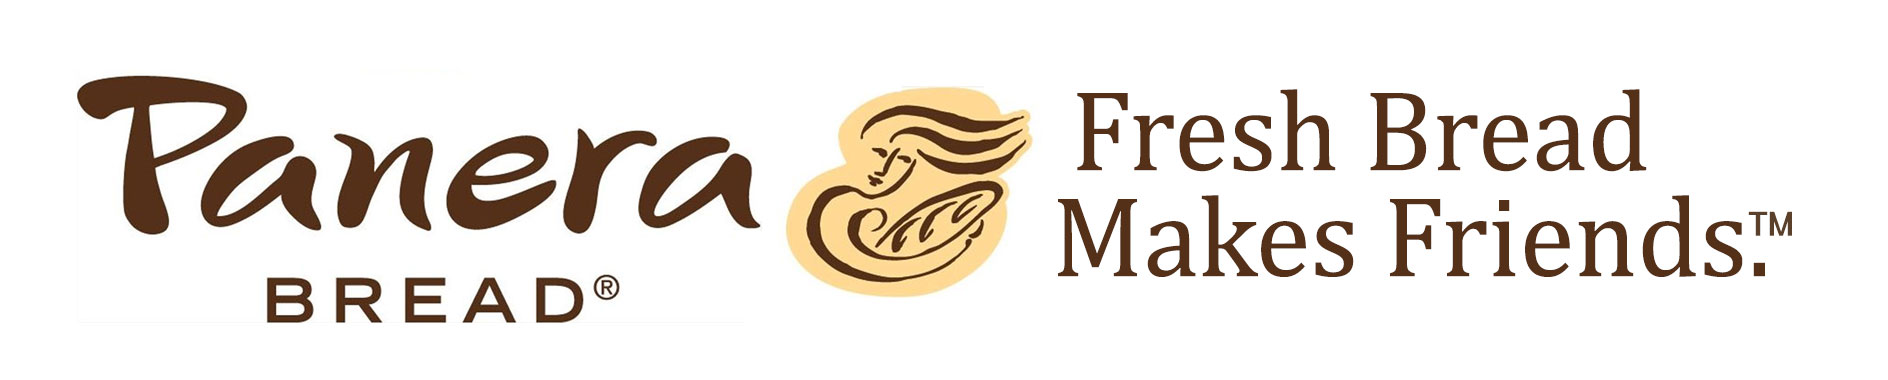 image of Panera Bread logo and motto